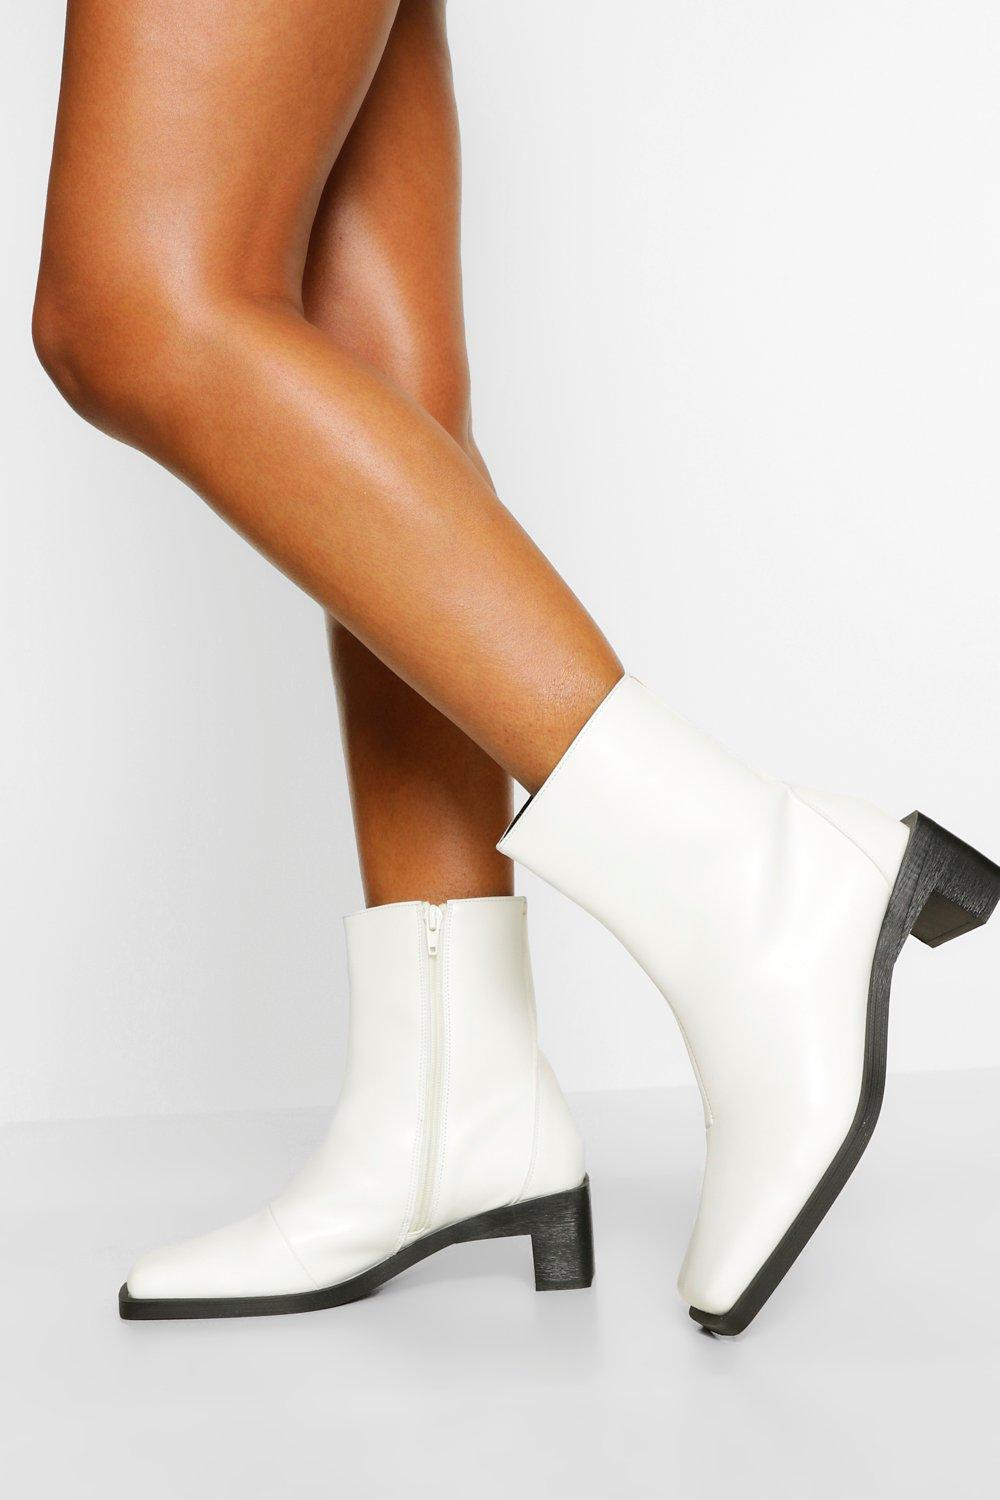 Vintage Boots, Retro Boots Womens Interest Low Heel Shoe Boot - White - 10 $28.00 AT vintagedancer.com